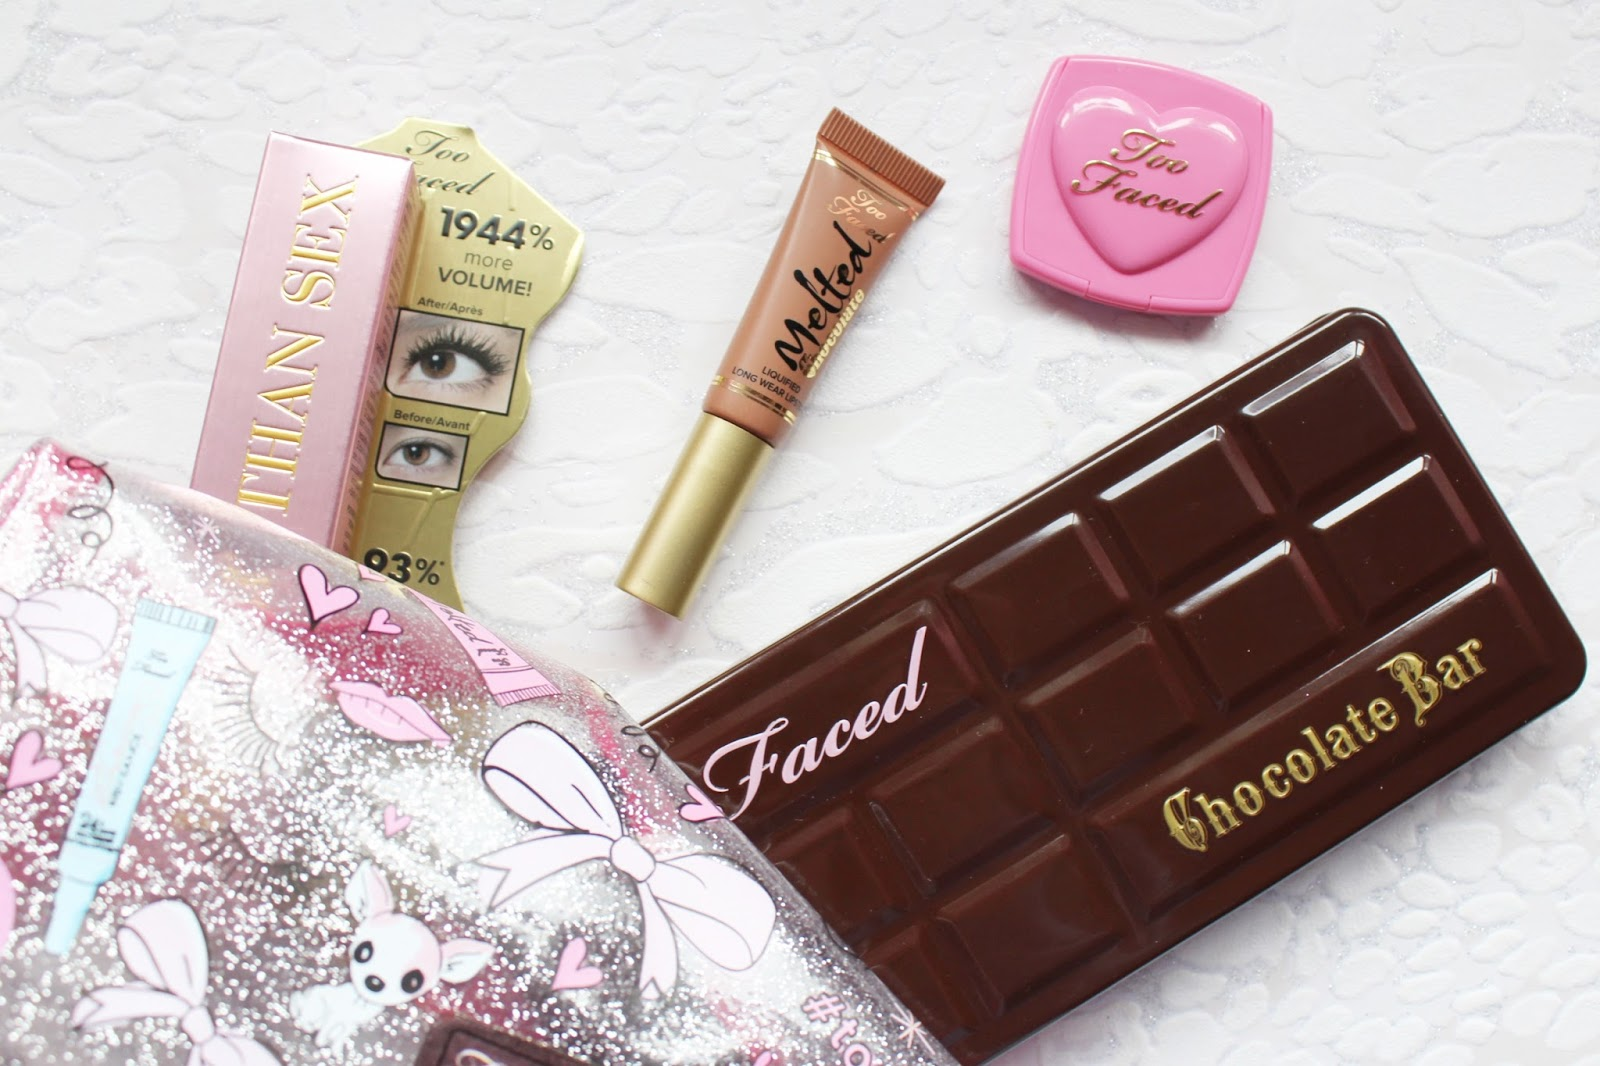 Too Faced x Skinny Dip